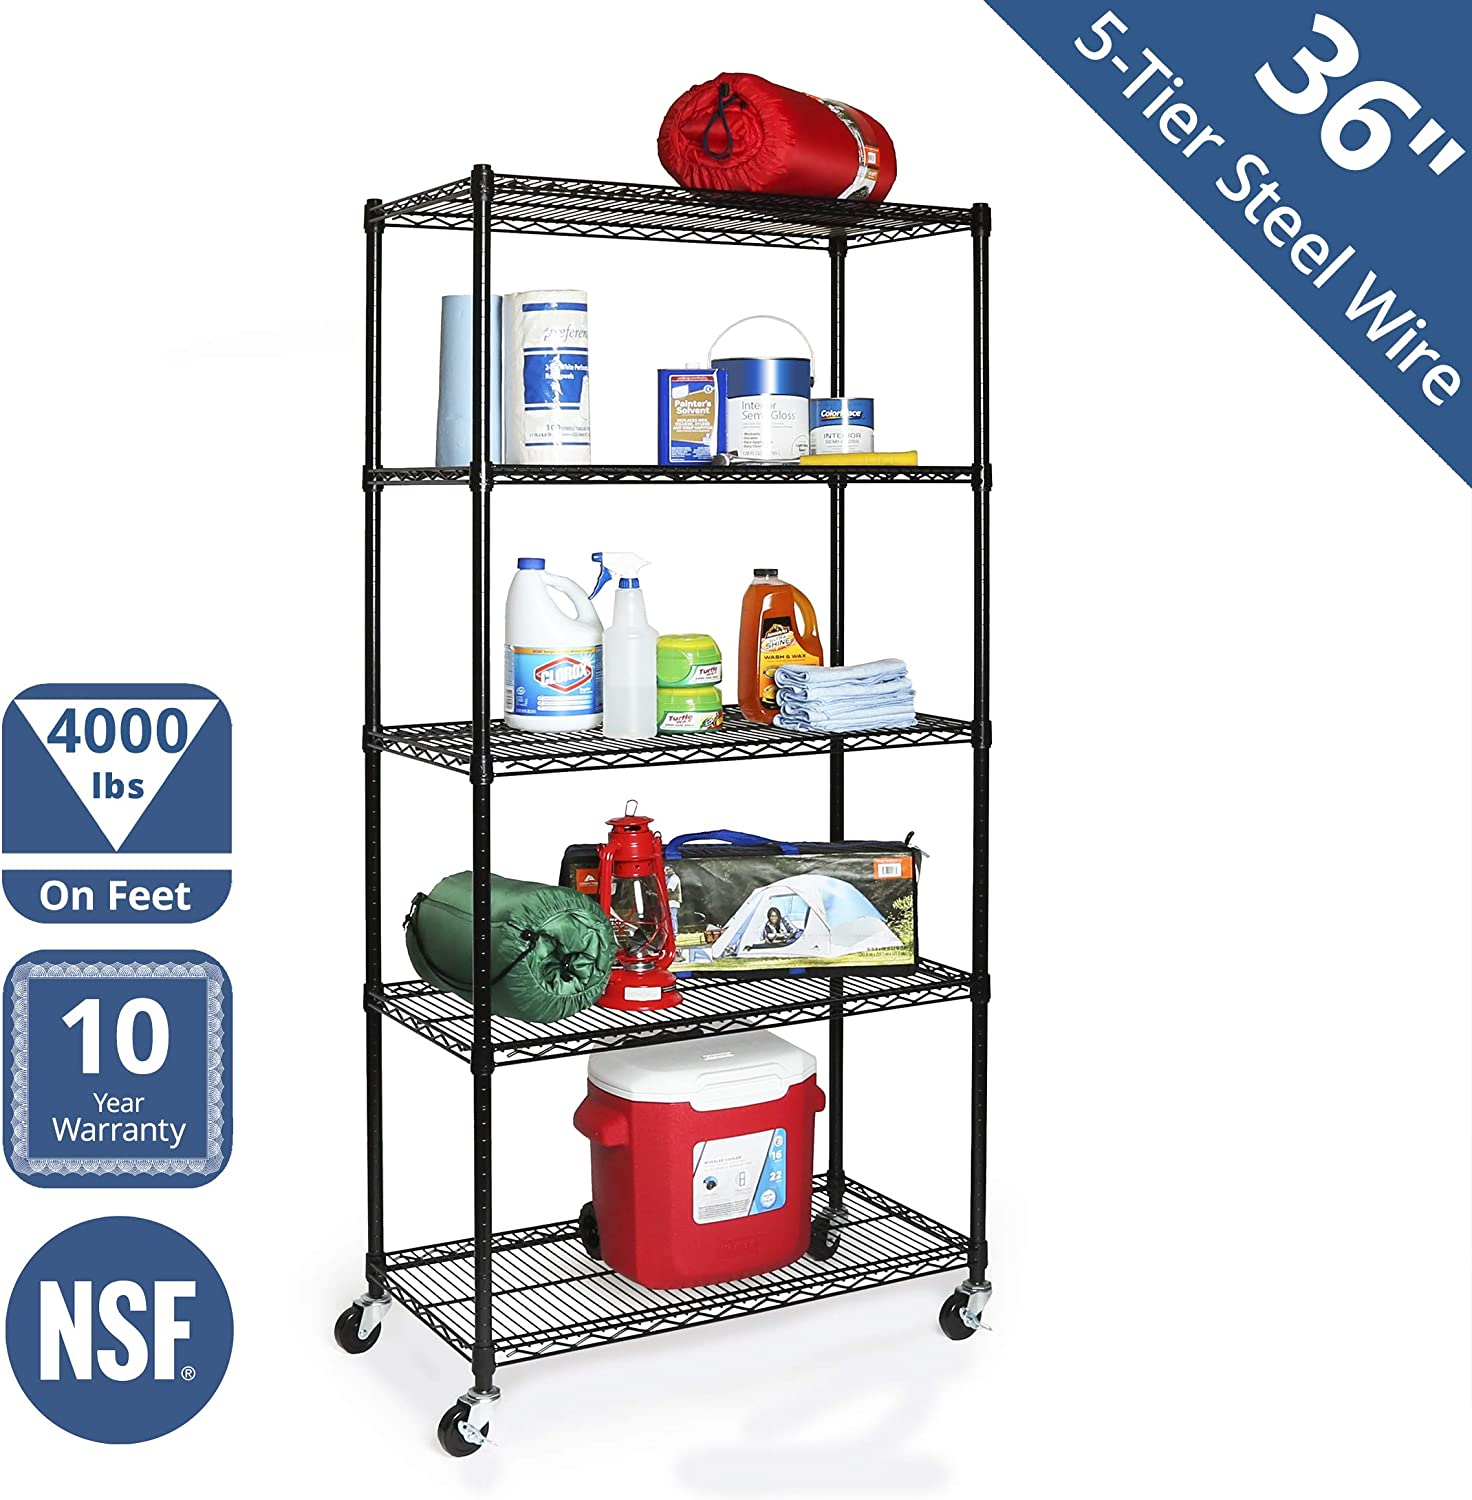 "Seville Classics UltraDurable Commercial-Grade 5-Tier NSF-Certified Steel Wire Shelving with Wheels, 36"" W x 18"" D, Black"